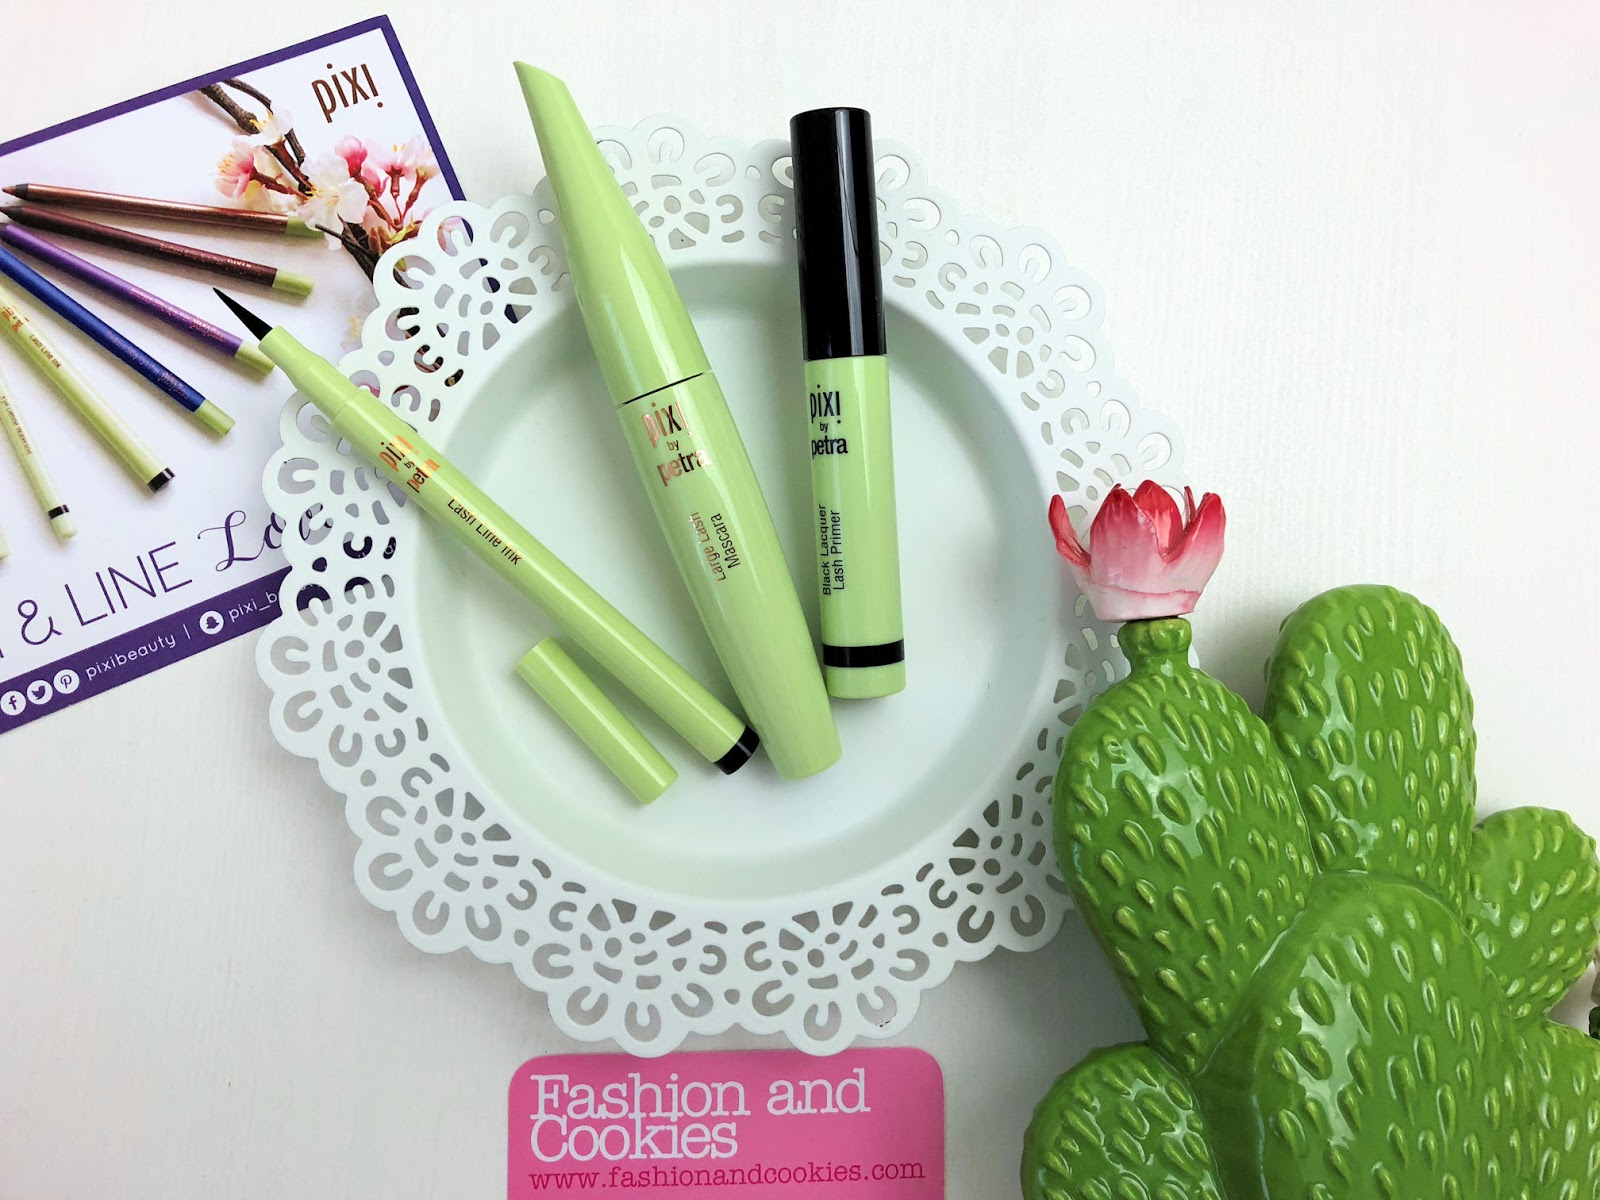 Pixi Beauty Lash & Line Love review on Fashion and Cookies beauty blog, beauty blogger